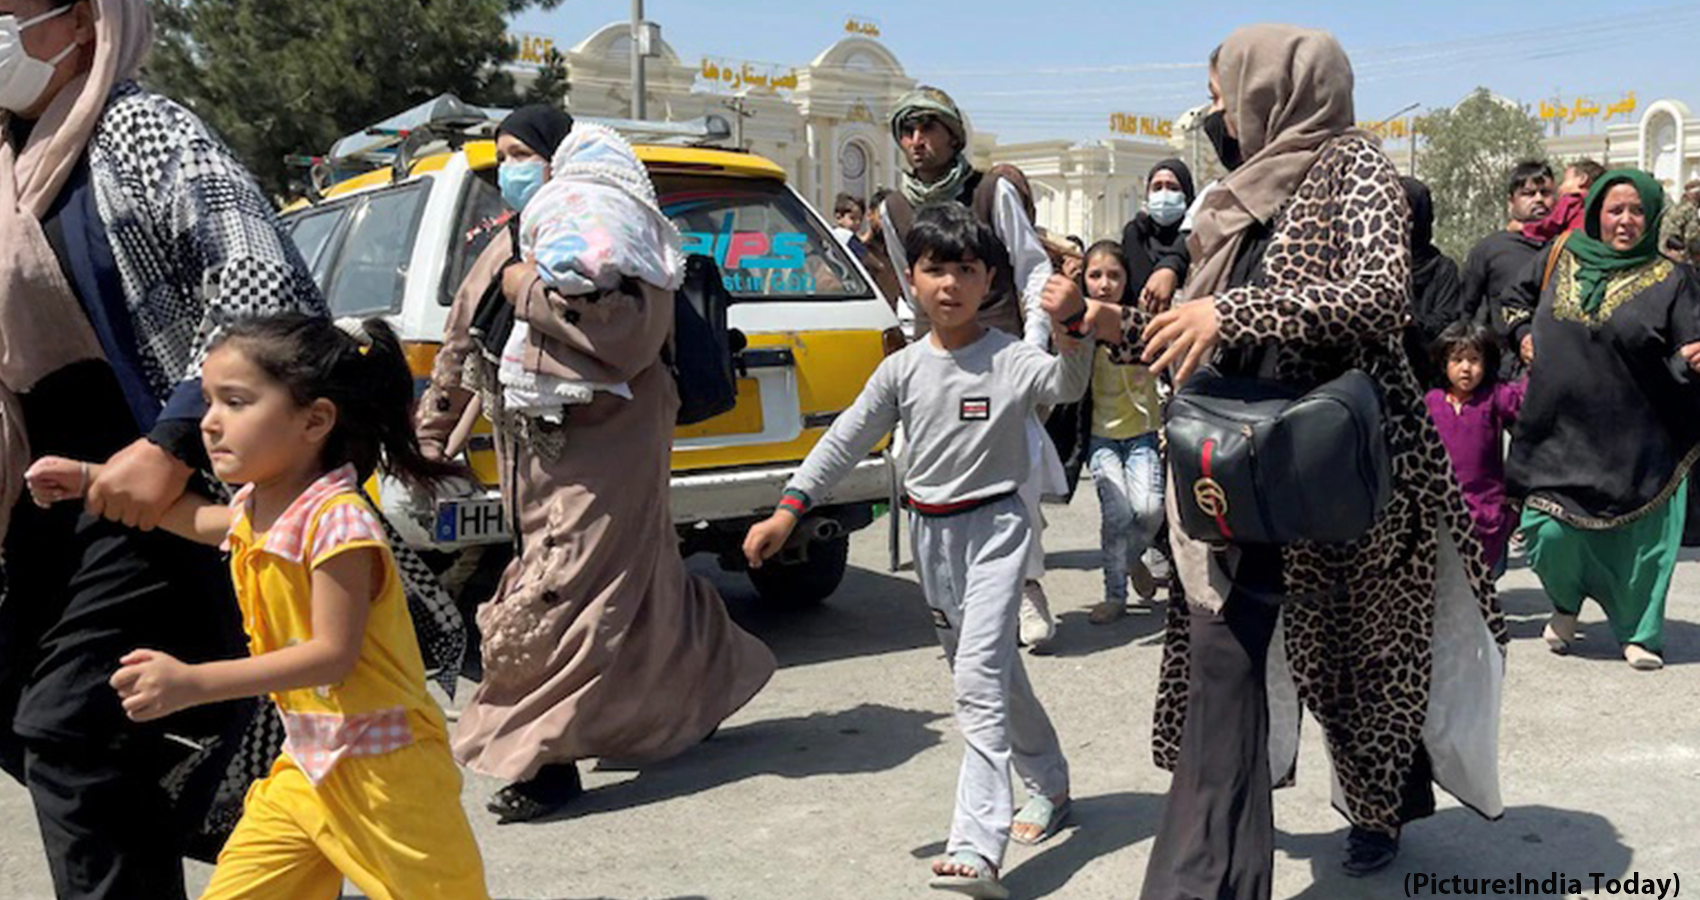 The Afghanistan Tragedy: Will There Be An End To Endless Wars?